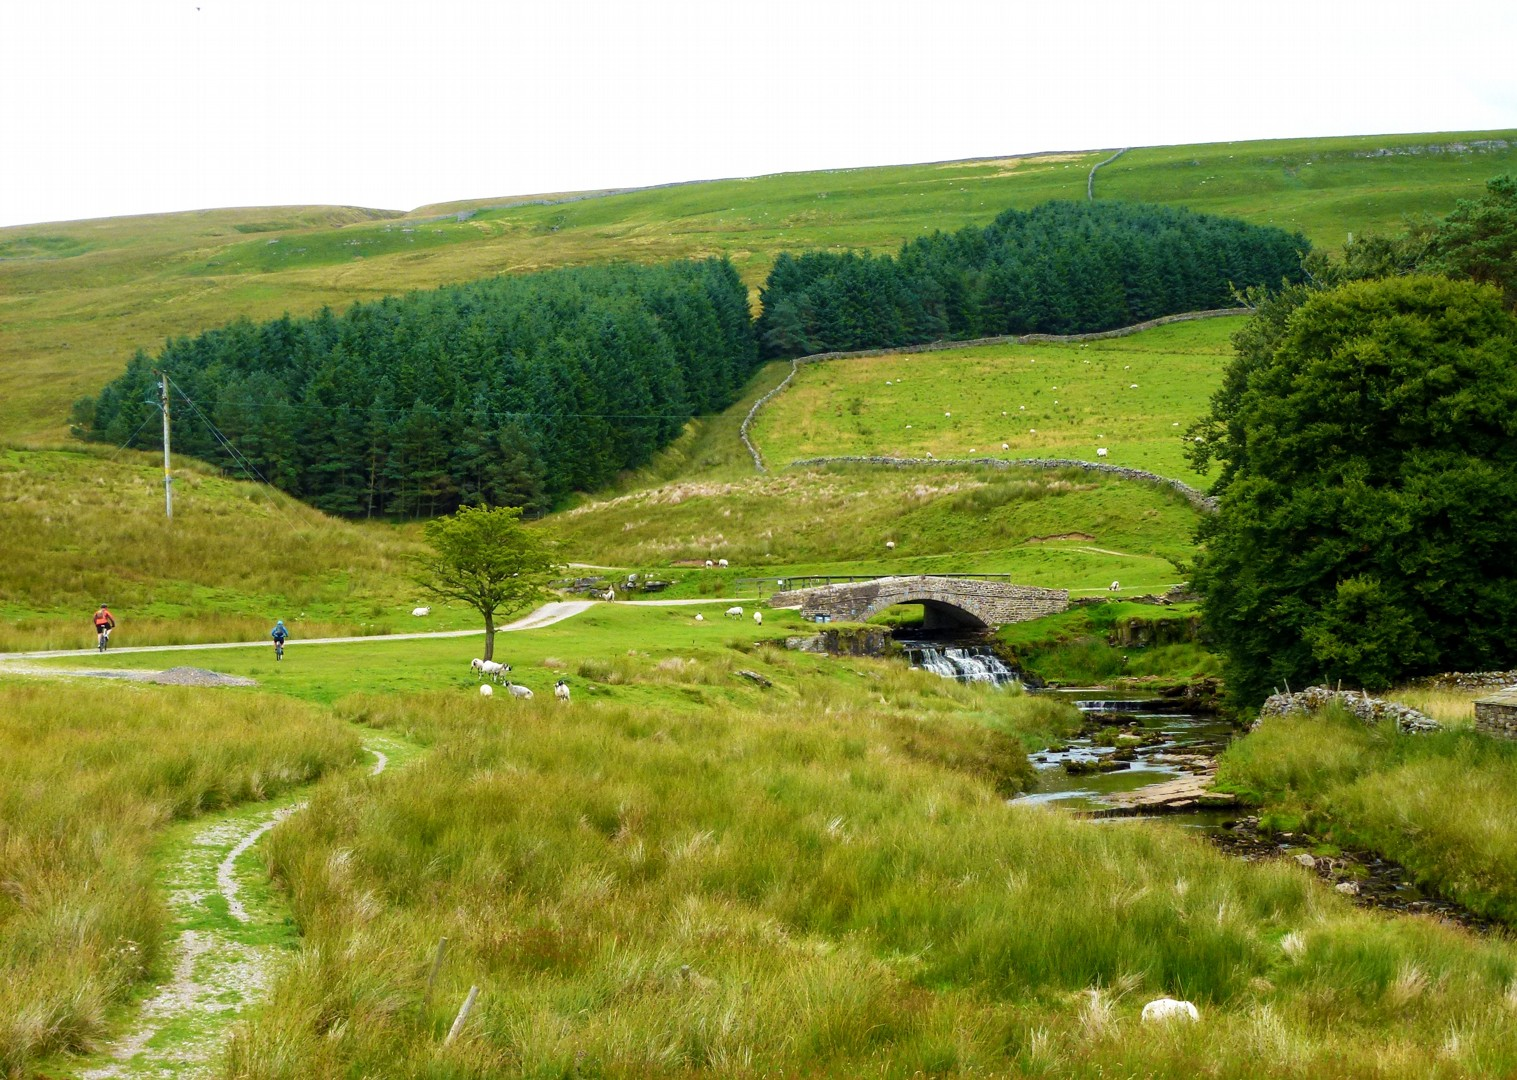 cam-high-road-mountain-bike-holiday-skedaddle.JPG - UK - Pennine Bridleway - Guided Mountain Bike Weekend - Mountain Biking